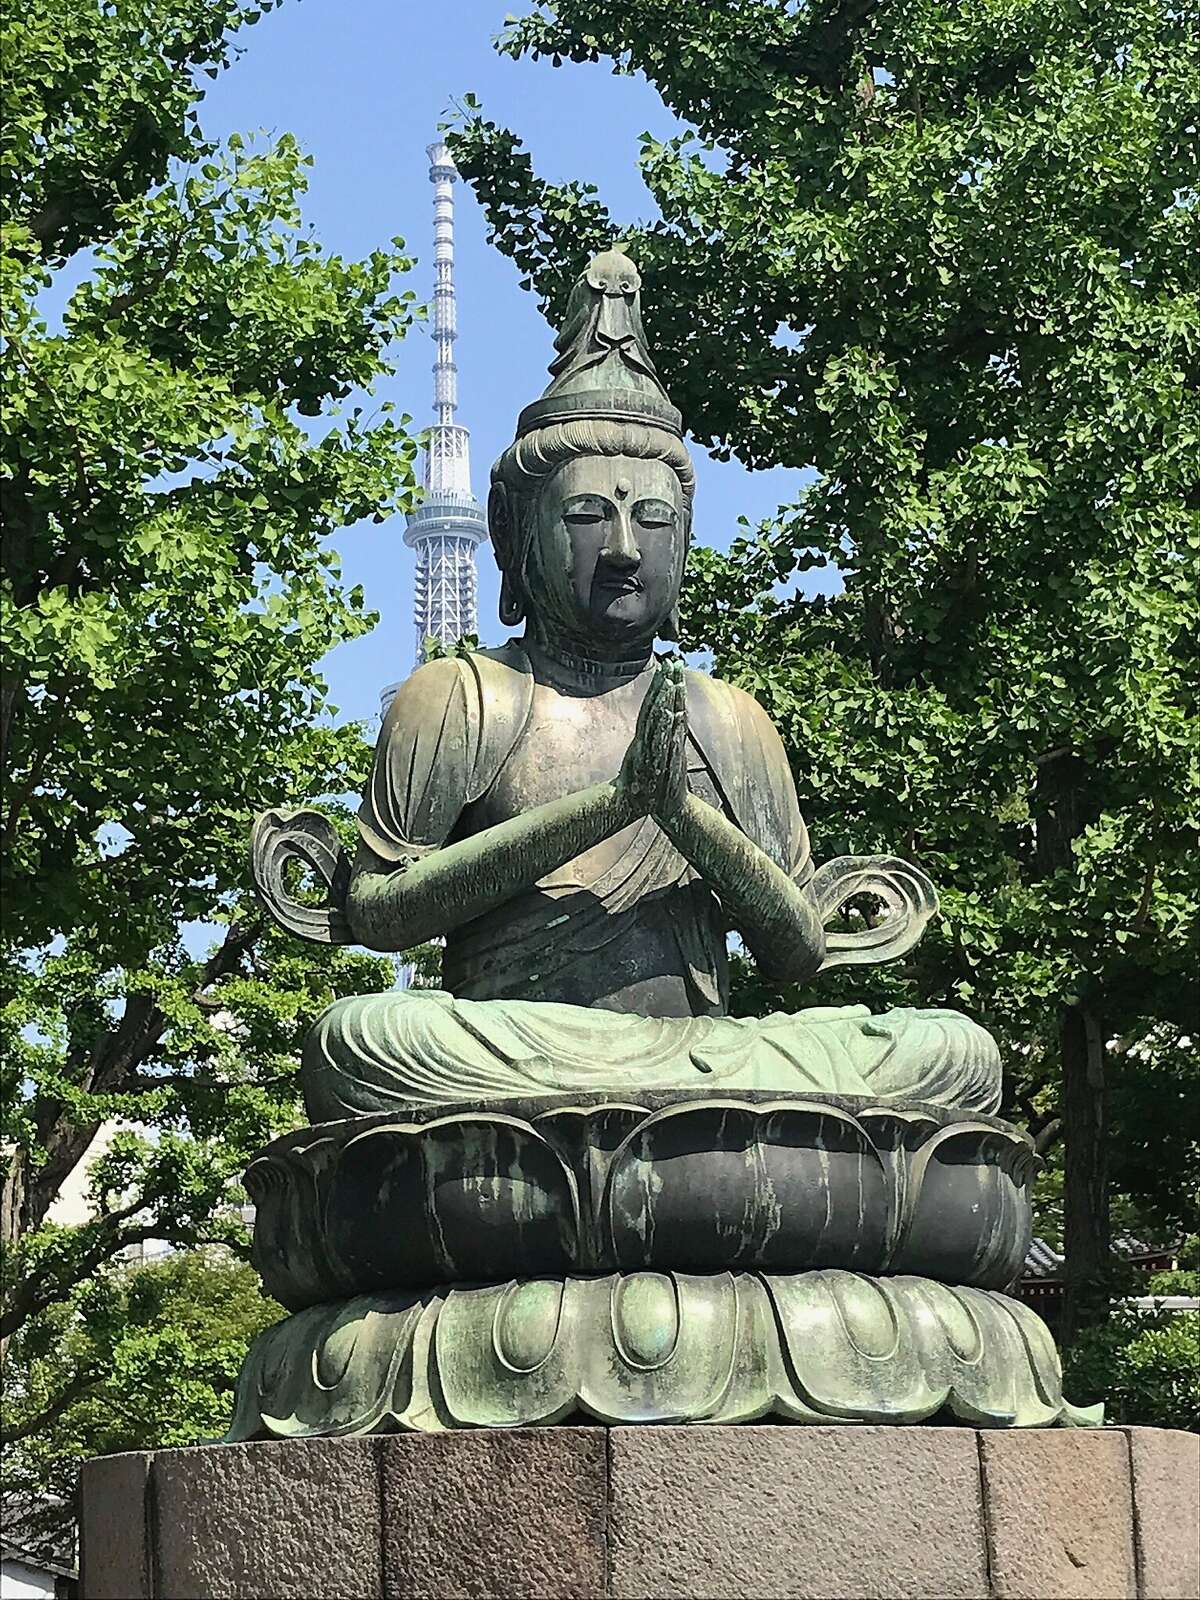 Ancient statue of the Buddha at the Sensoji temple grounds, Tokyo, may 4, 1019. The modern tower behind is a landmark in the Asakusa District of Tokyo. Carl Nolte/the Chronicle